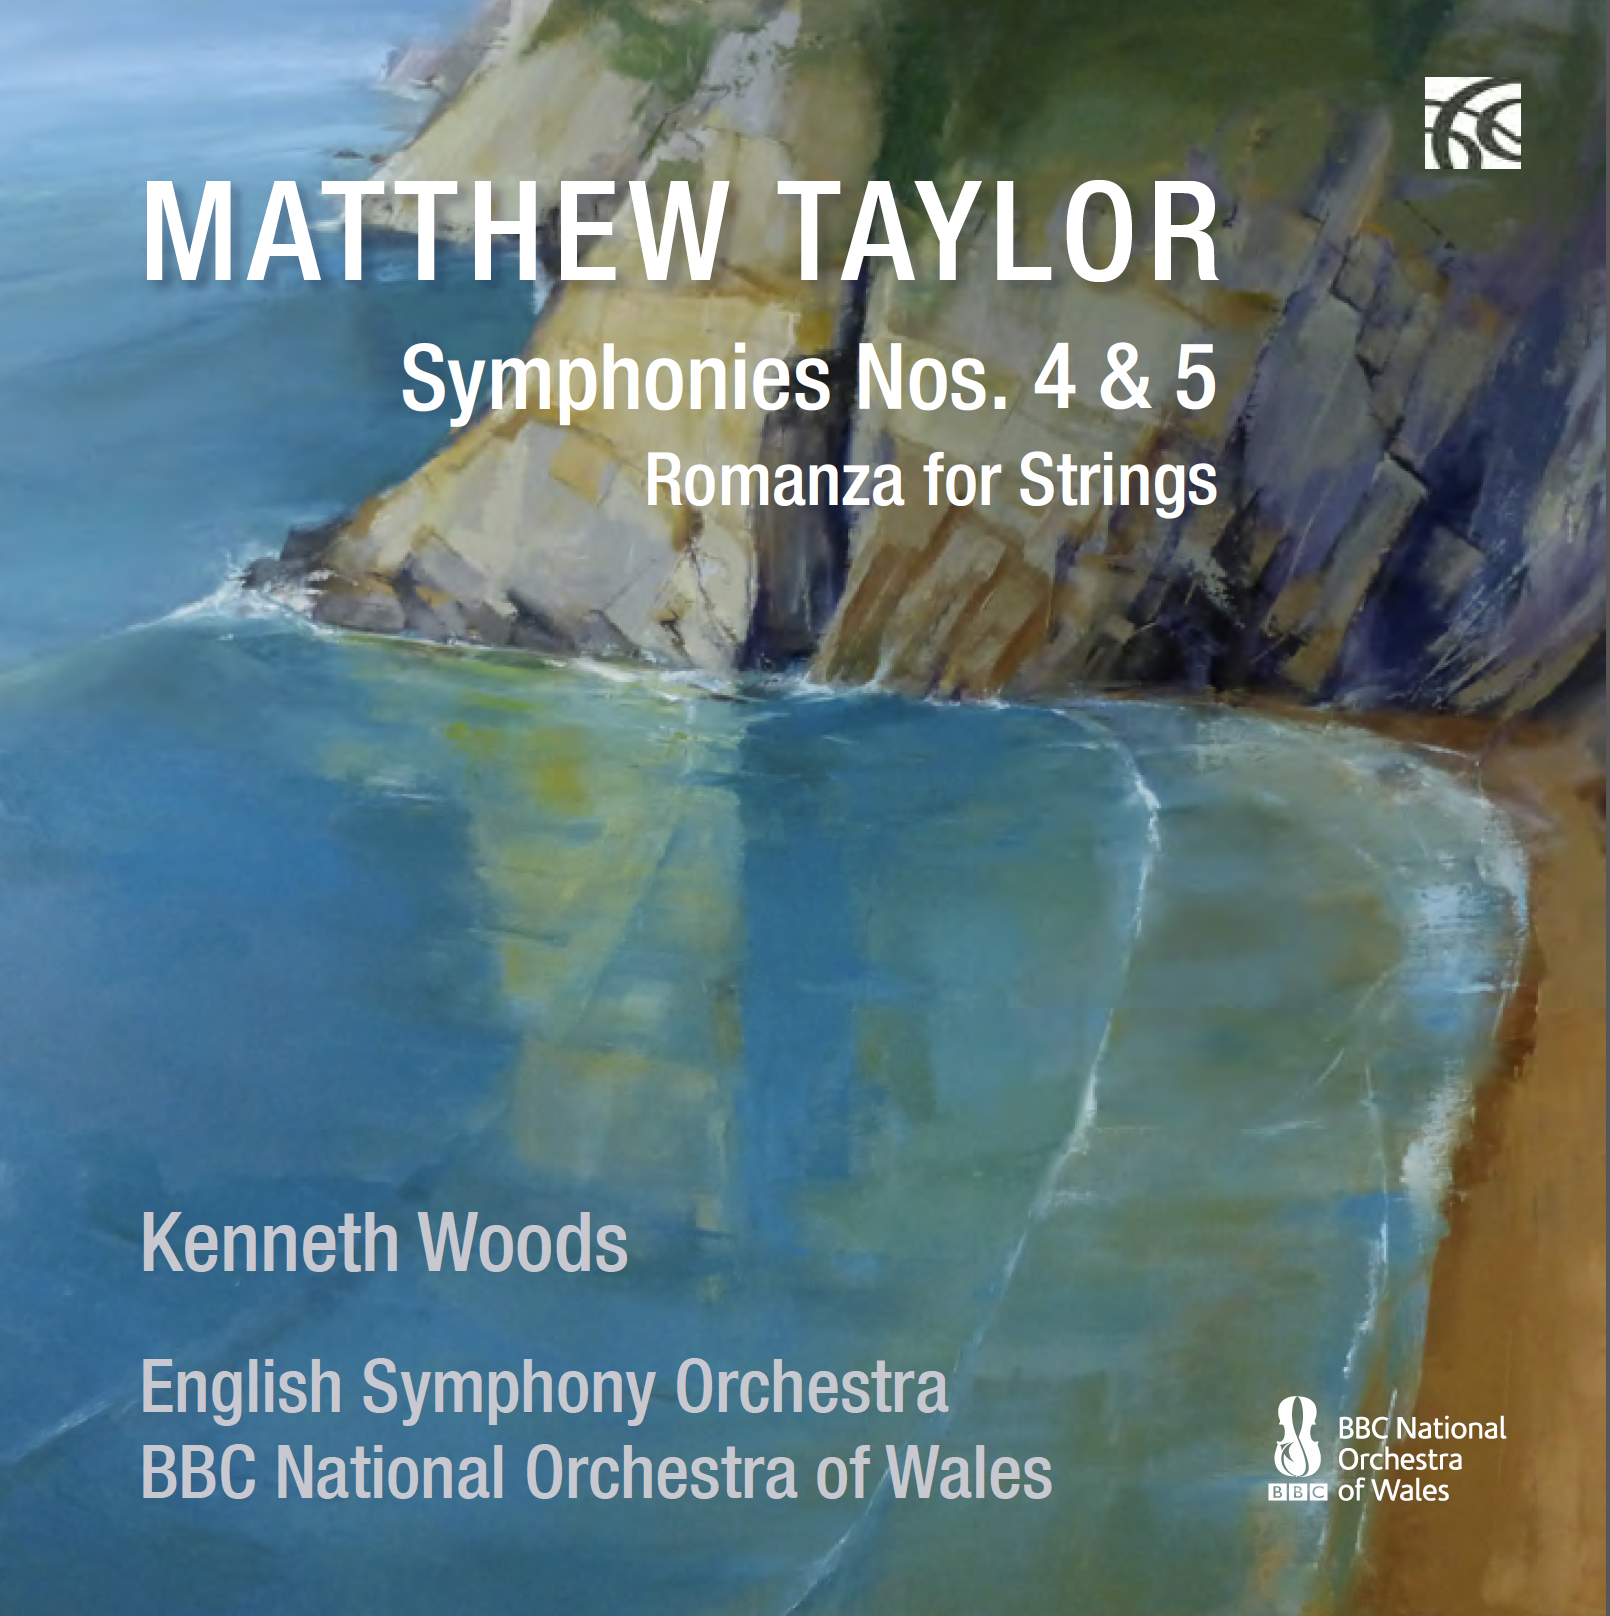 CD Review: Matthew Taylor's Fourth and Fifth Symphonies, BBC National Orchestra of Wales and English Symphony Orchestra (Nimbus)